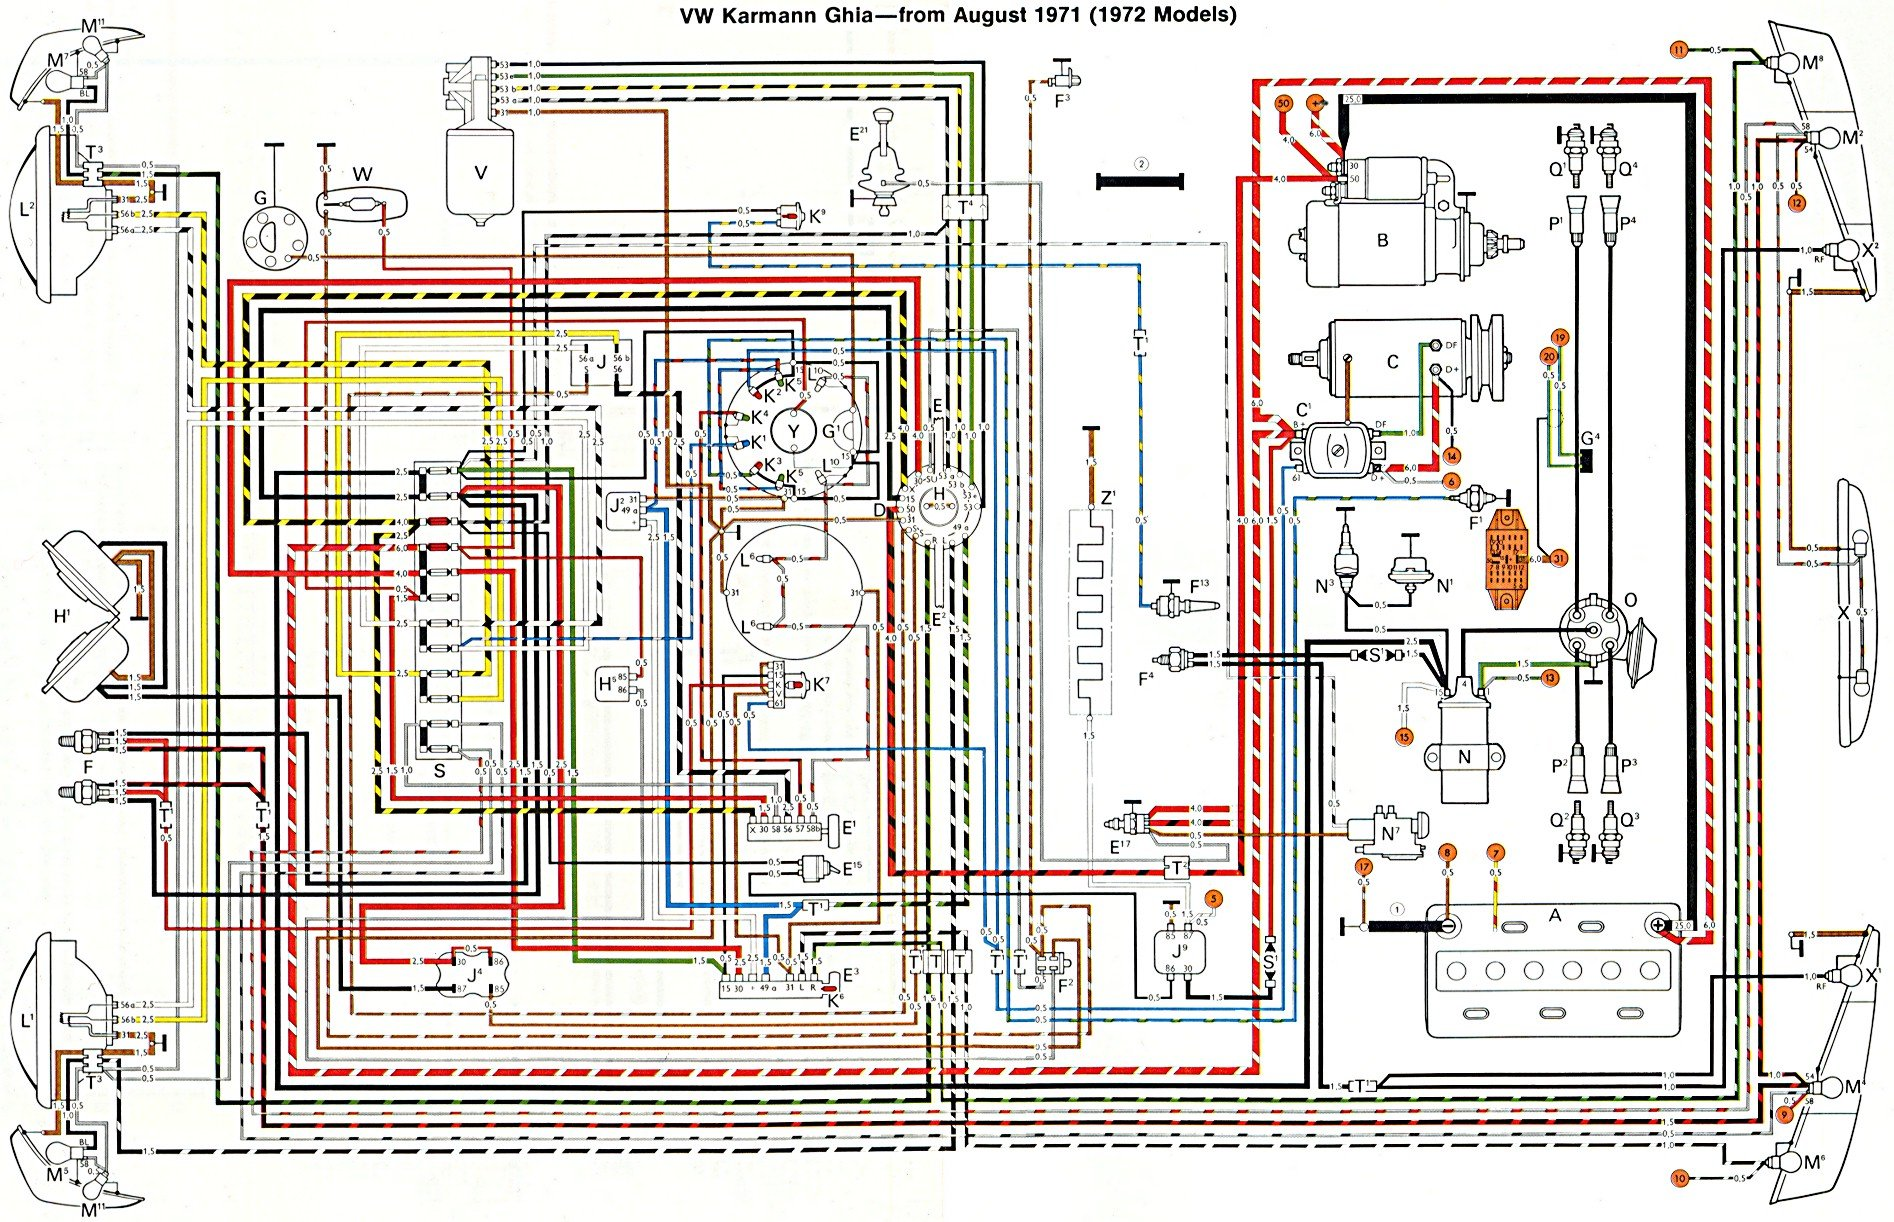 72ghia thesamba com karmann ghia wiring diagrams 74 karmann ghia wiring diagram at soozxer.org